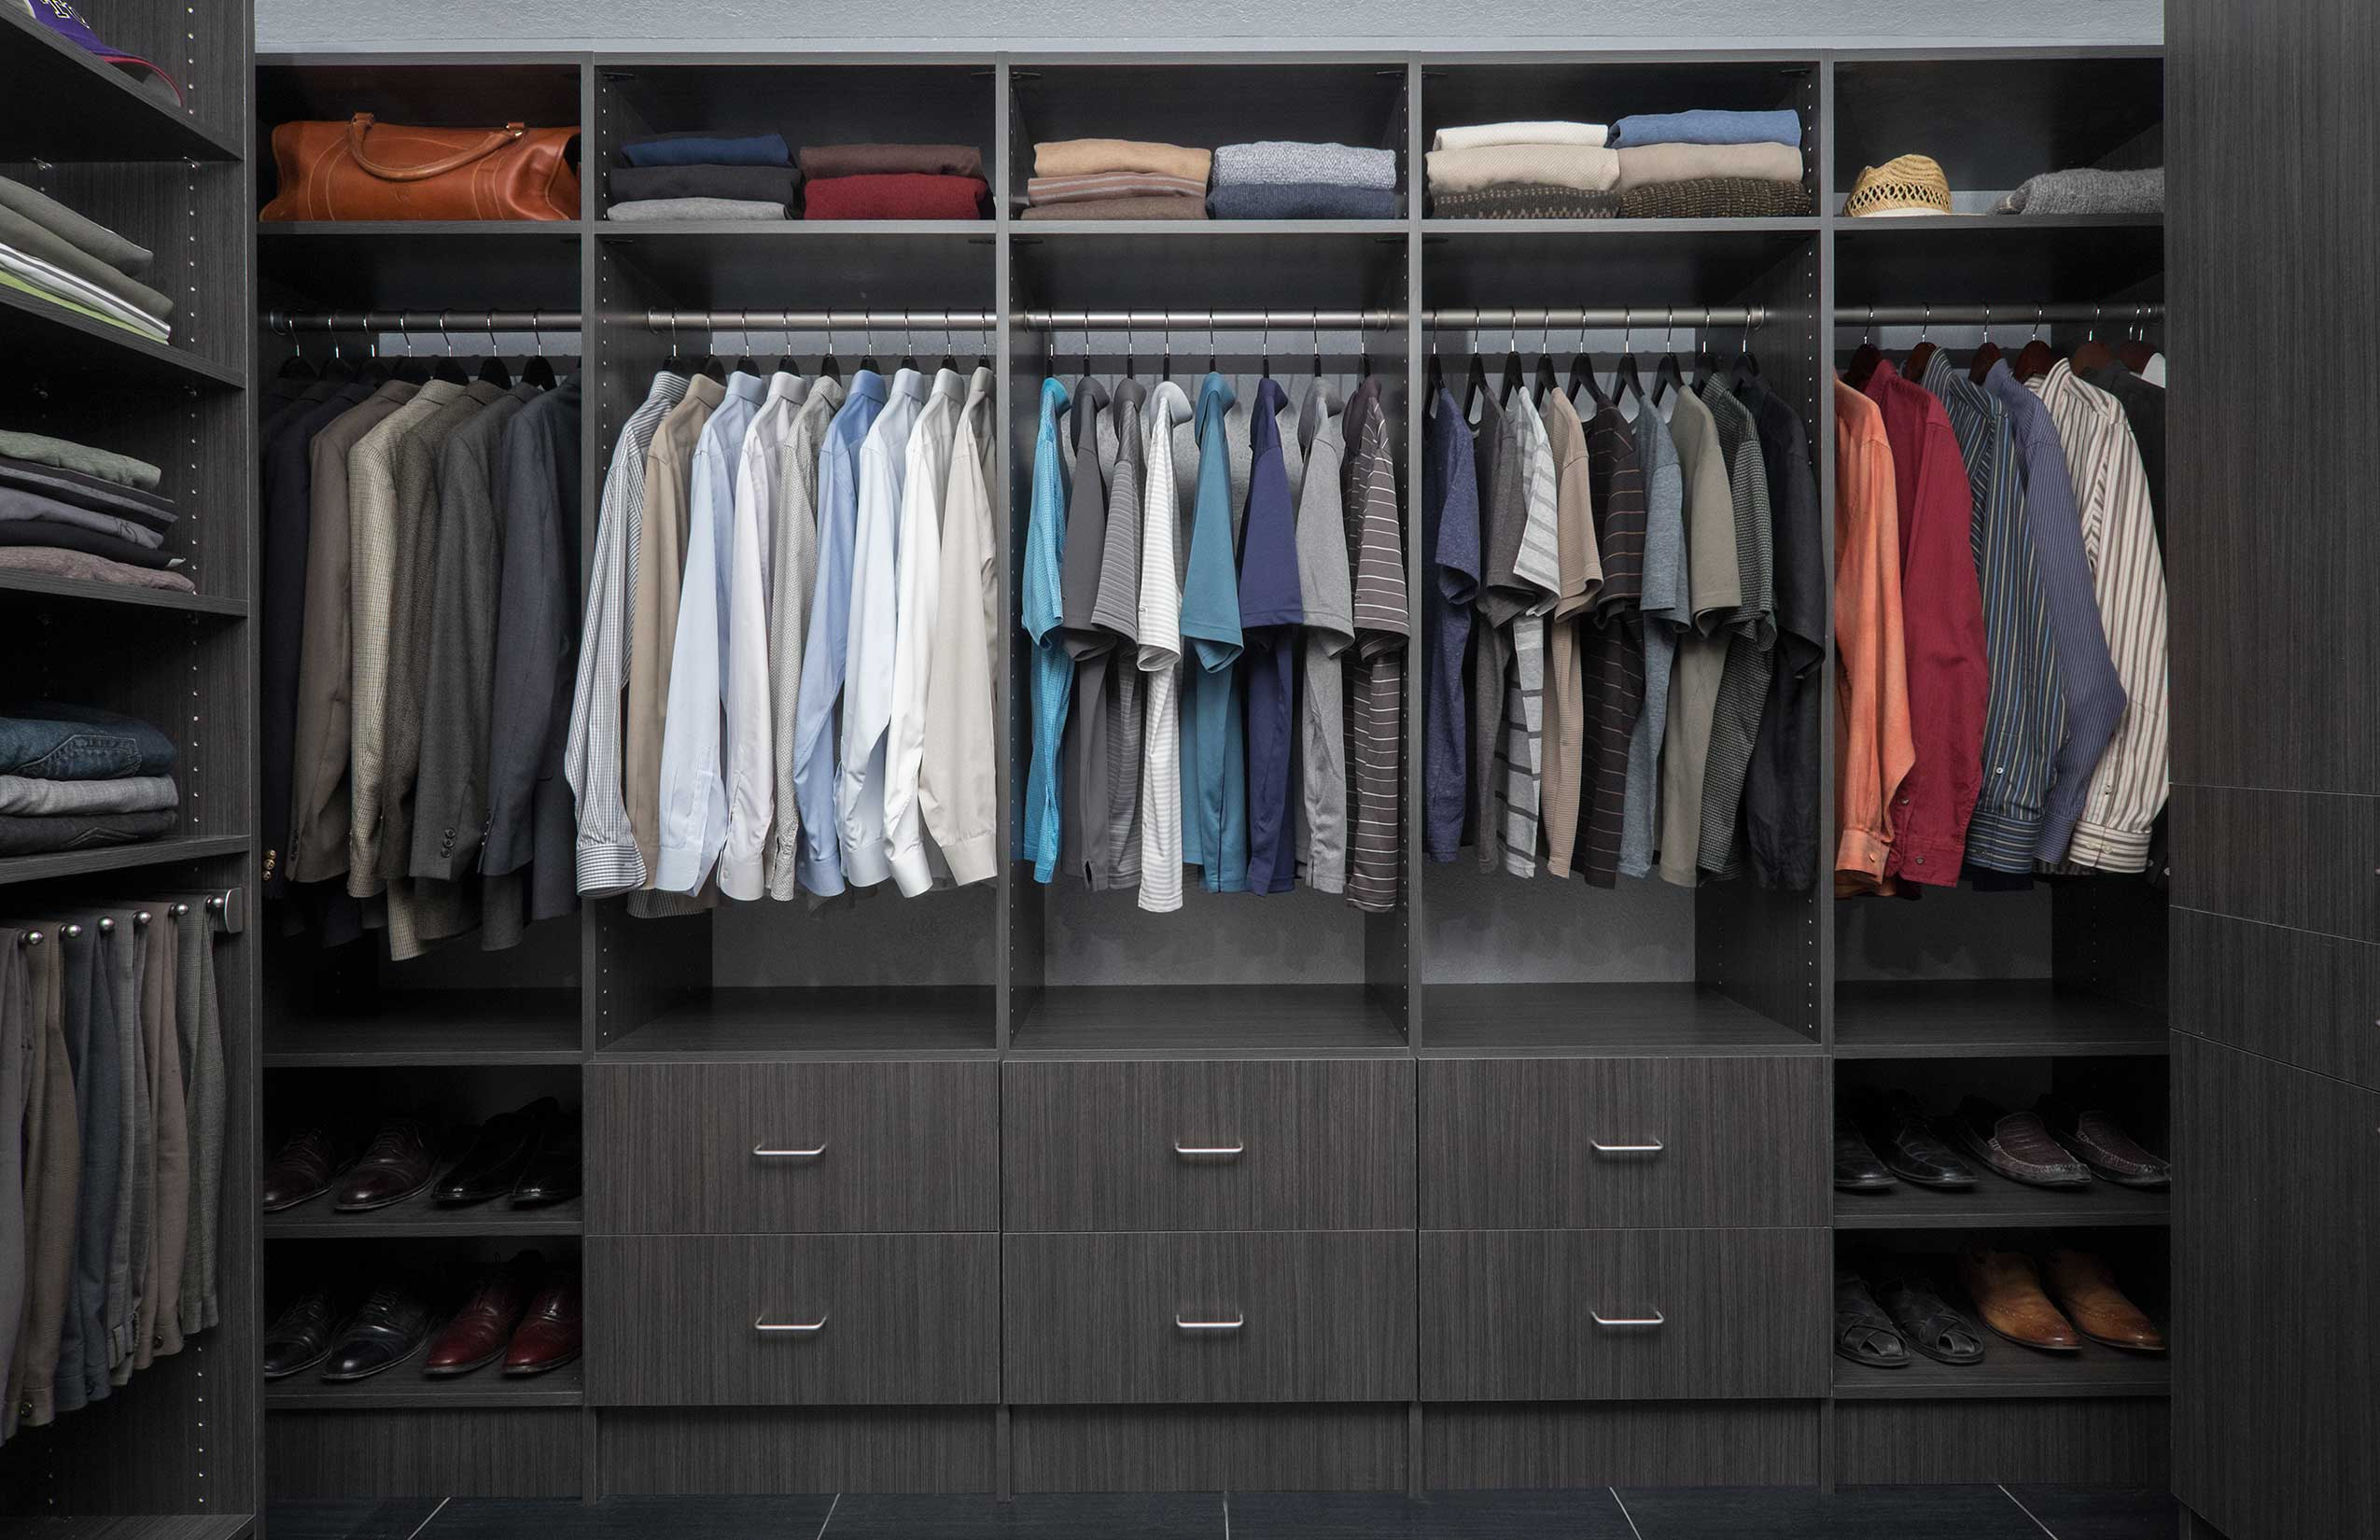 The Truth Is, You Can Have A Beautiful And Functional Closet Organizer  Regardless Of Any Space And Budget Limitations You May Have.